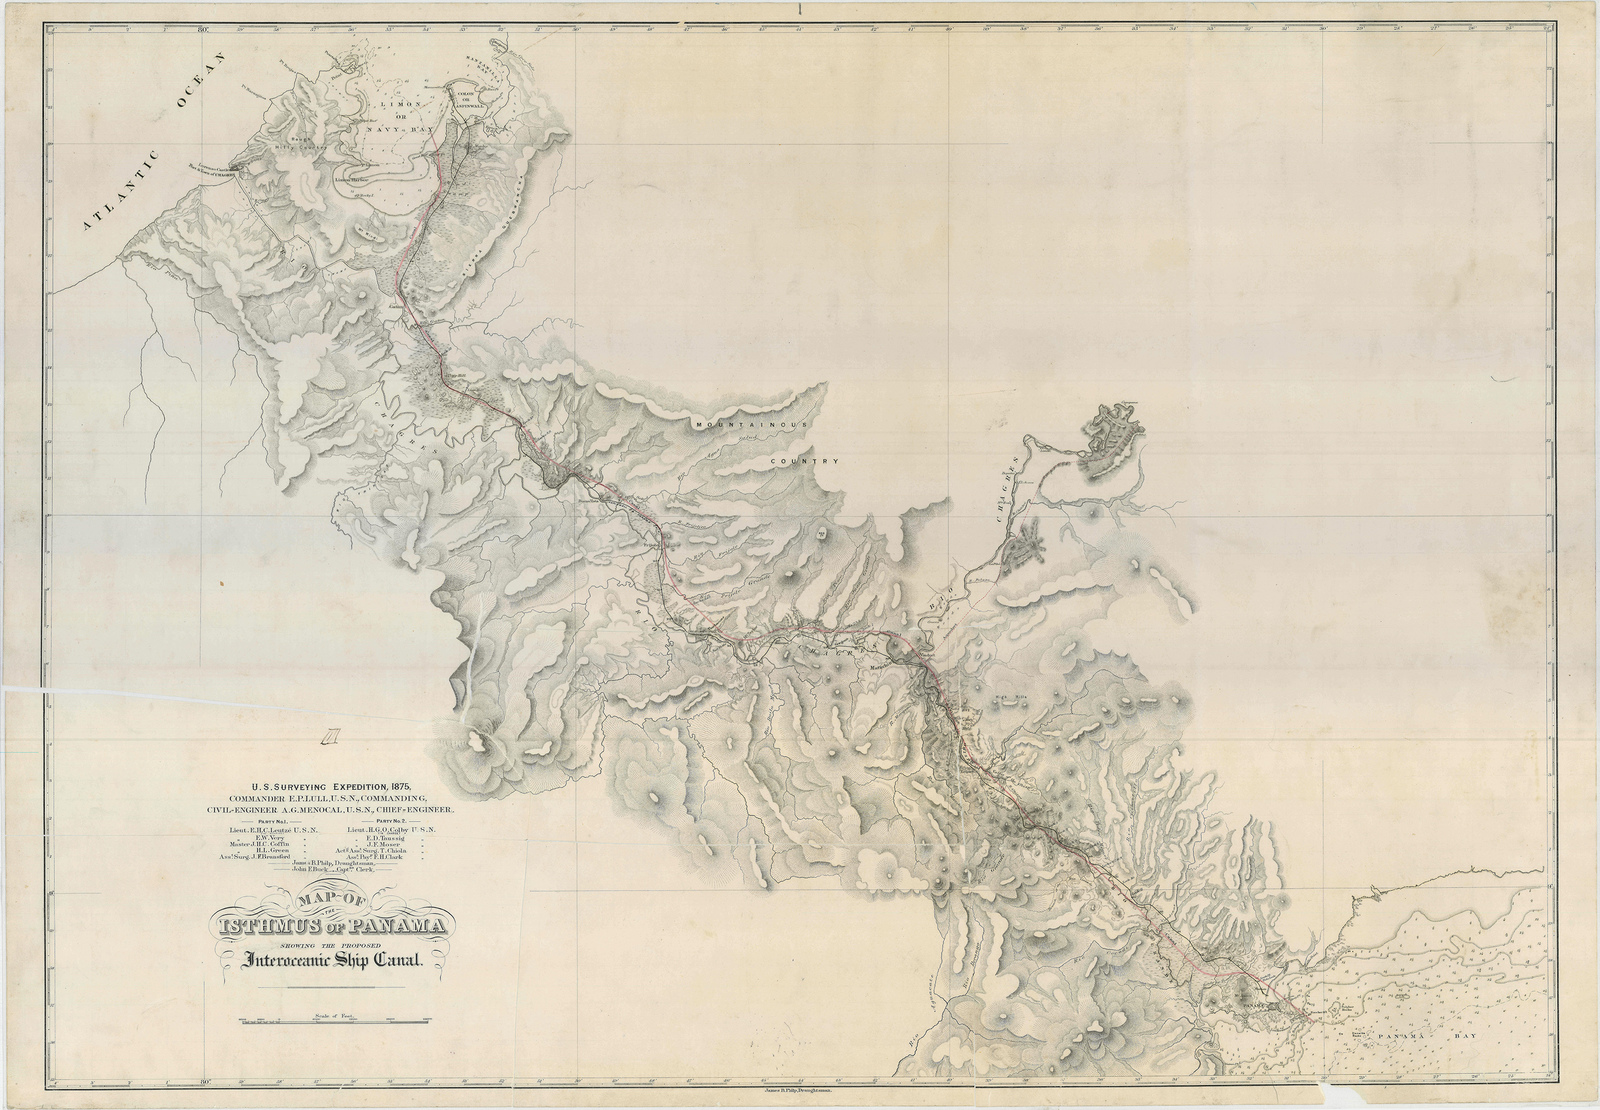 Map of the Isthmus of Panama Showing the Proposed Interoceanic Ship ...